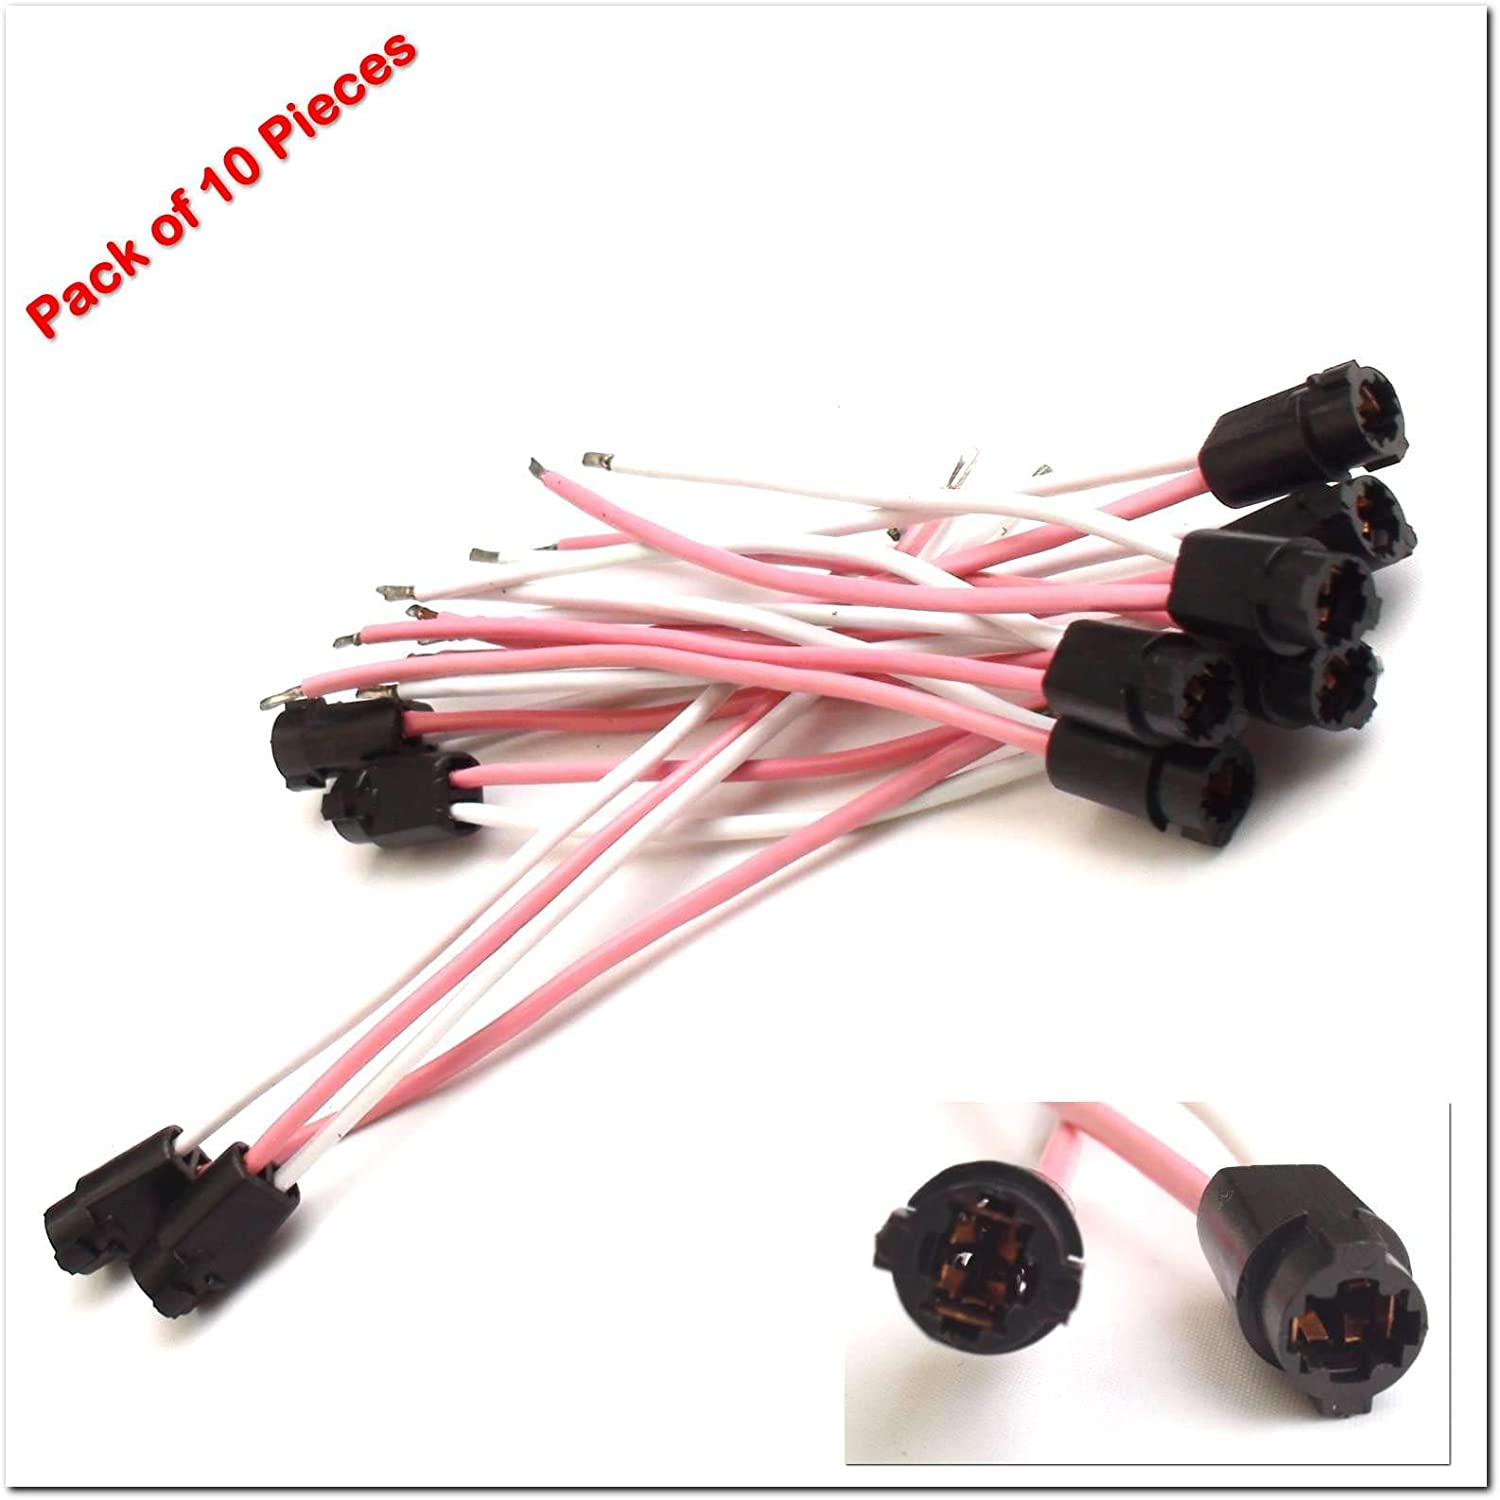 uxcell 8pcs T5 LED Lamp Dashboard Indicator Light Socket Bulb Harness Wire for Car Vehicle